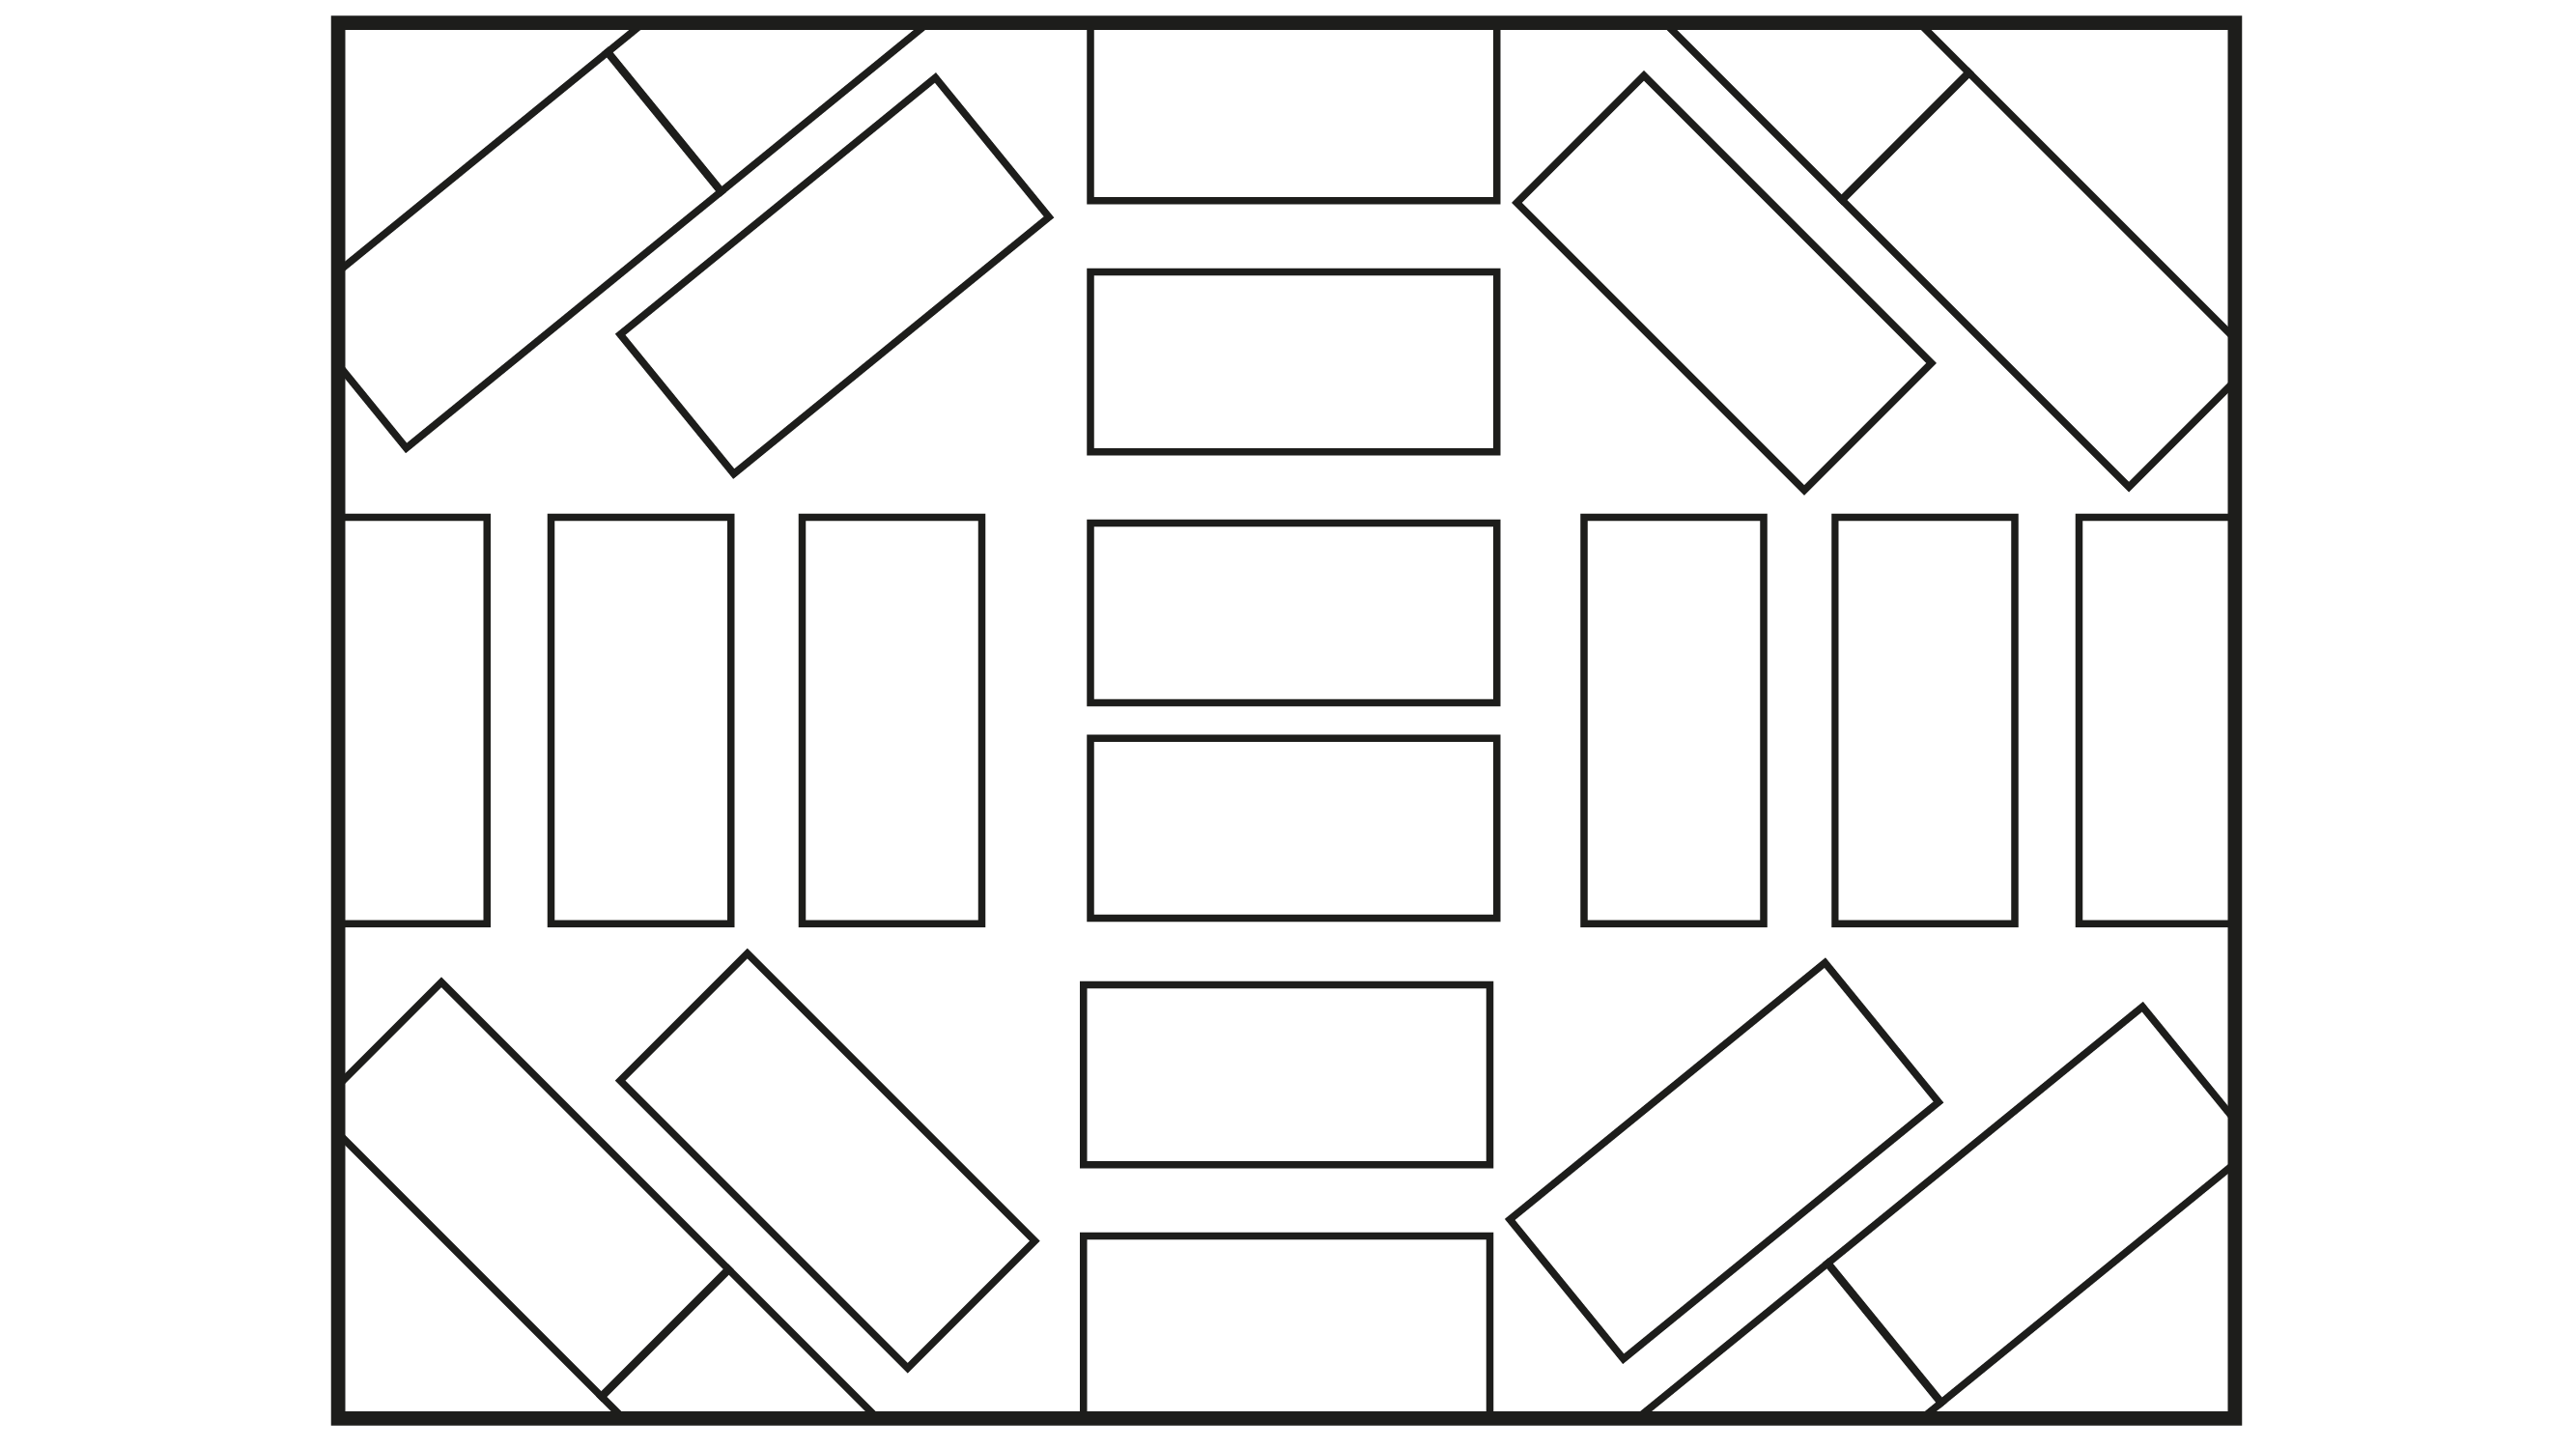 Mixed form around intersections formed by blocks of apartments without central squares.